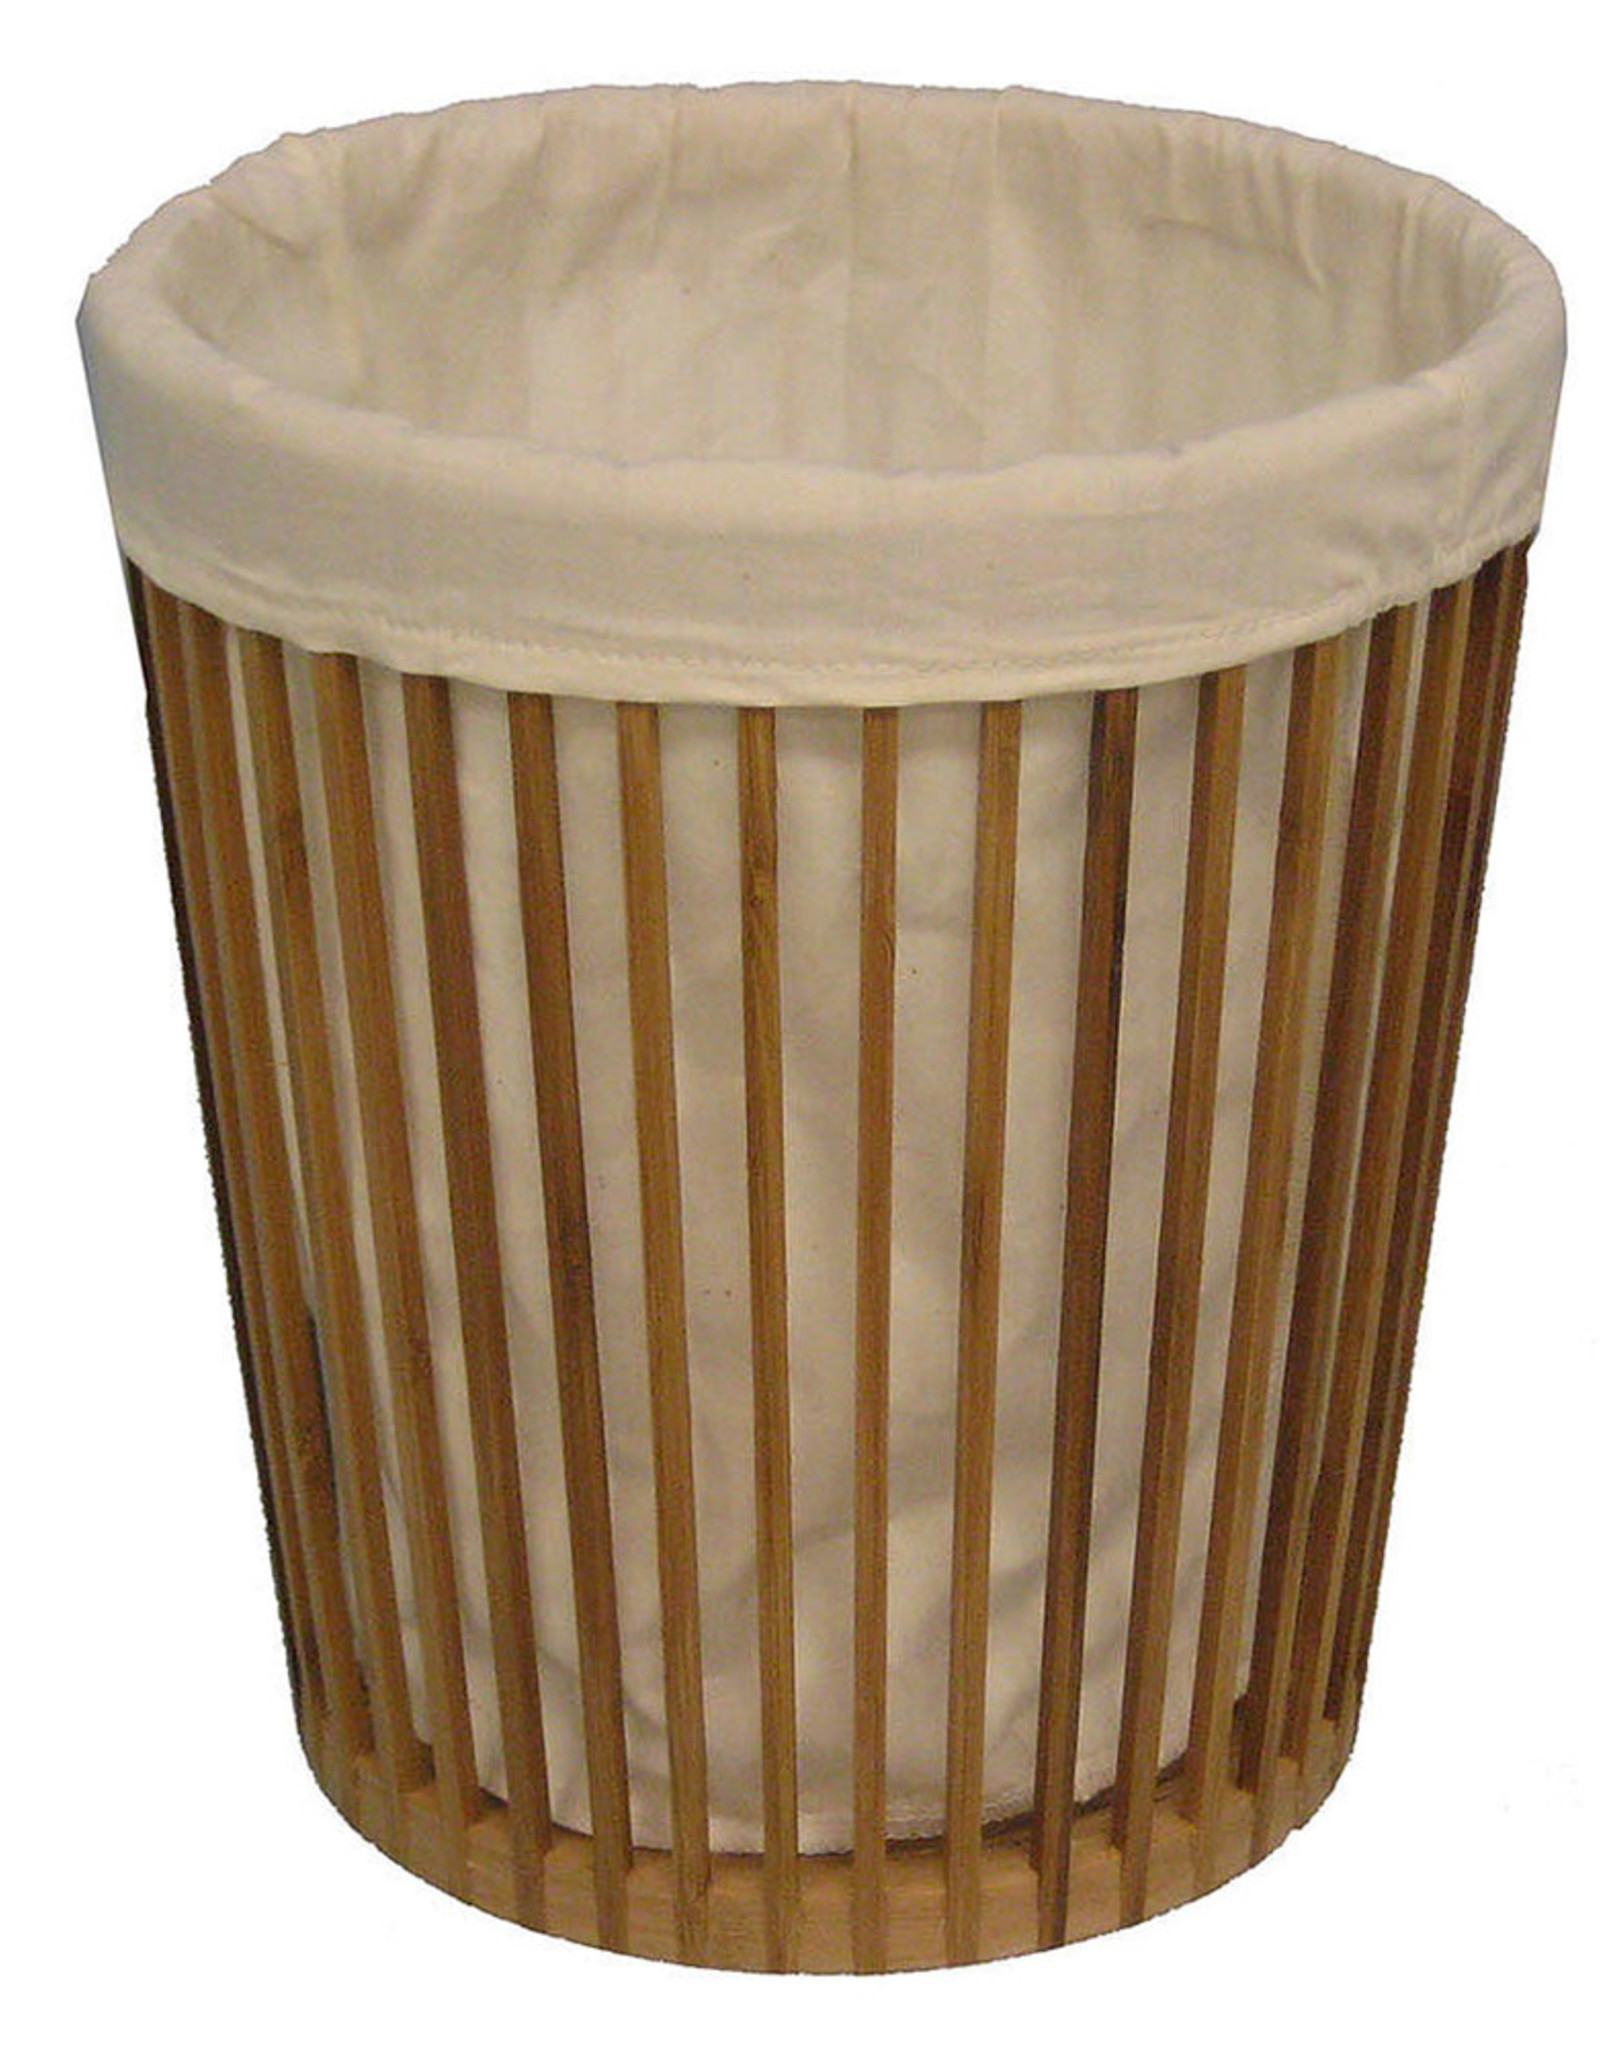 Cathay Basket Cathay Bamboo Round Bin W/Liner 23-0081